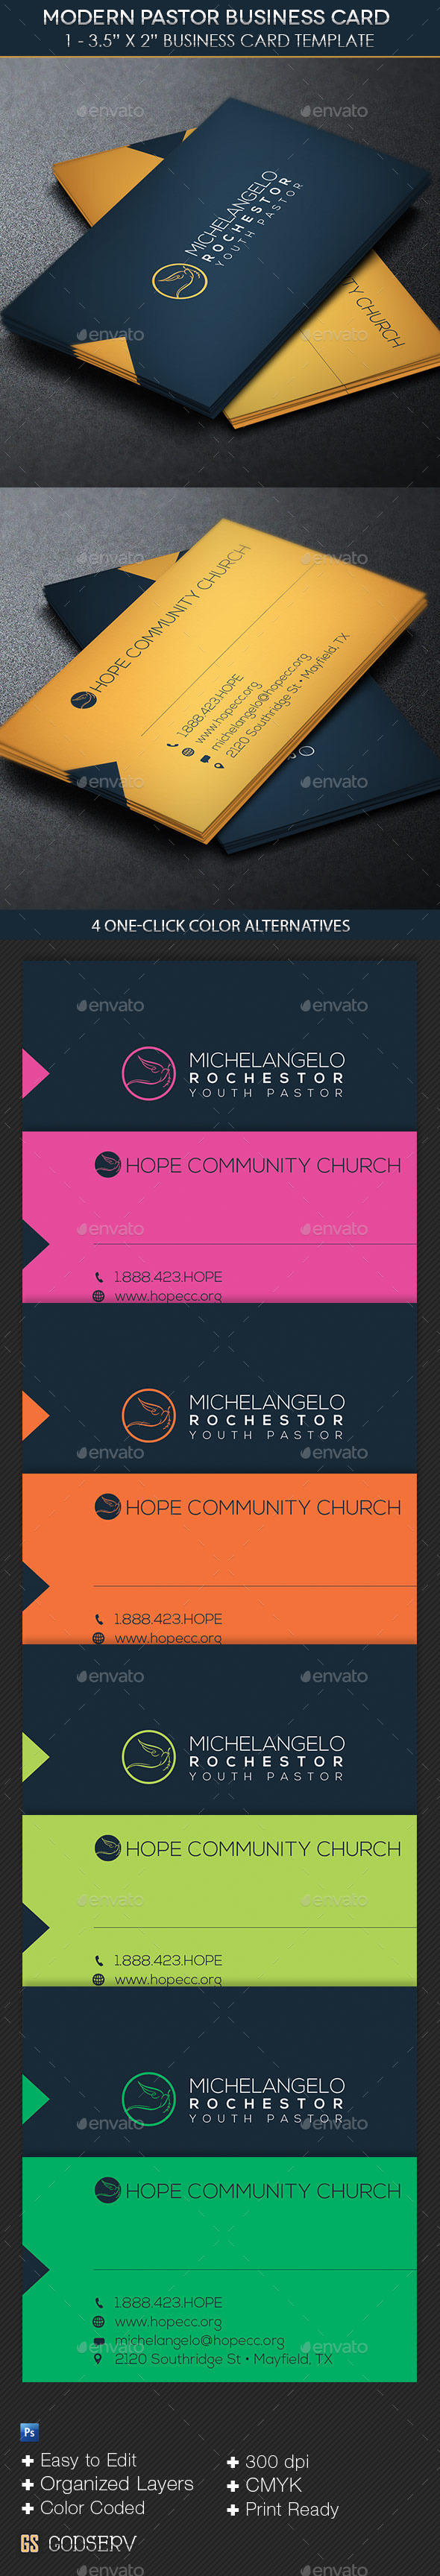 modern pastor business card template industry specific business cards - Pastor Business Cards